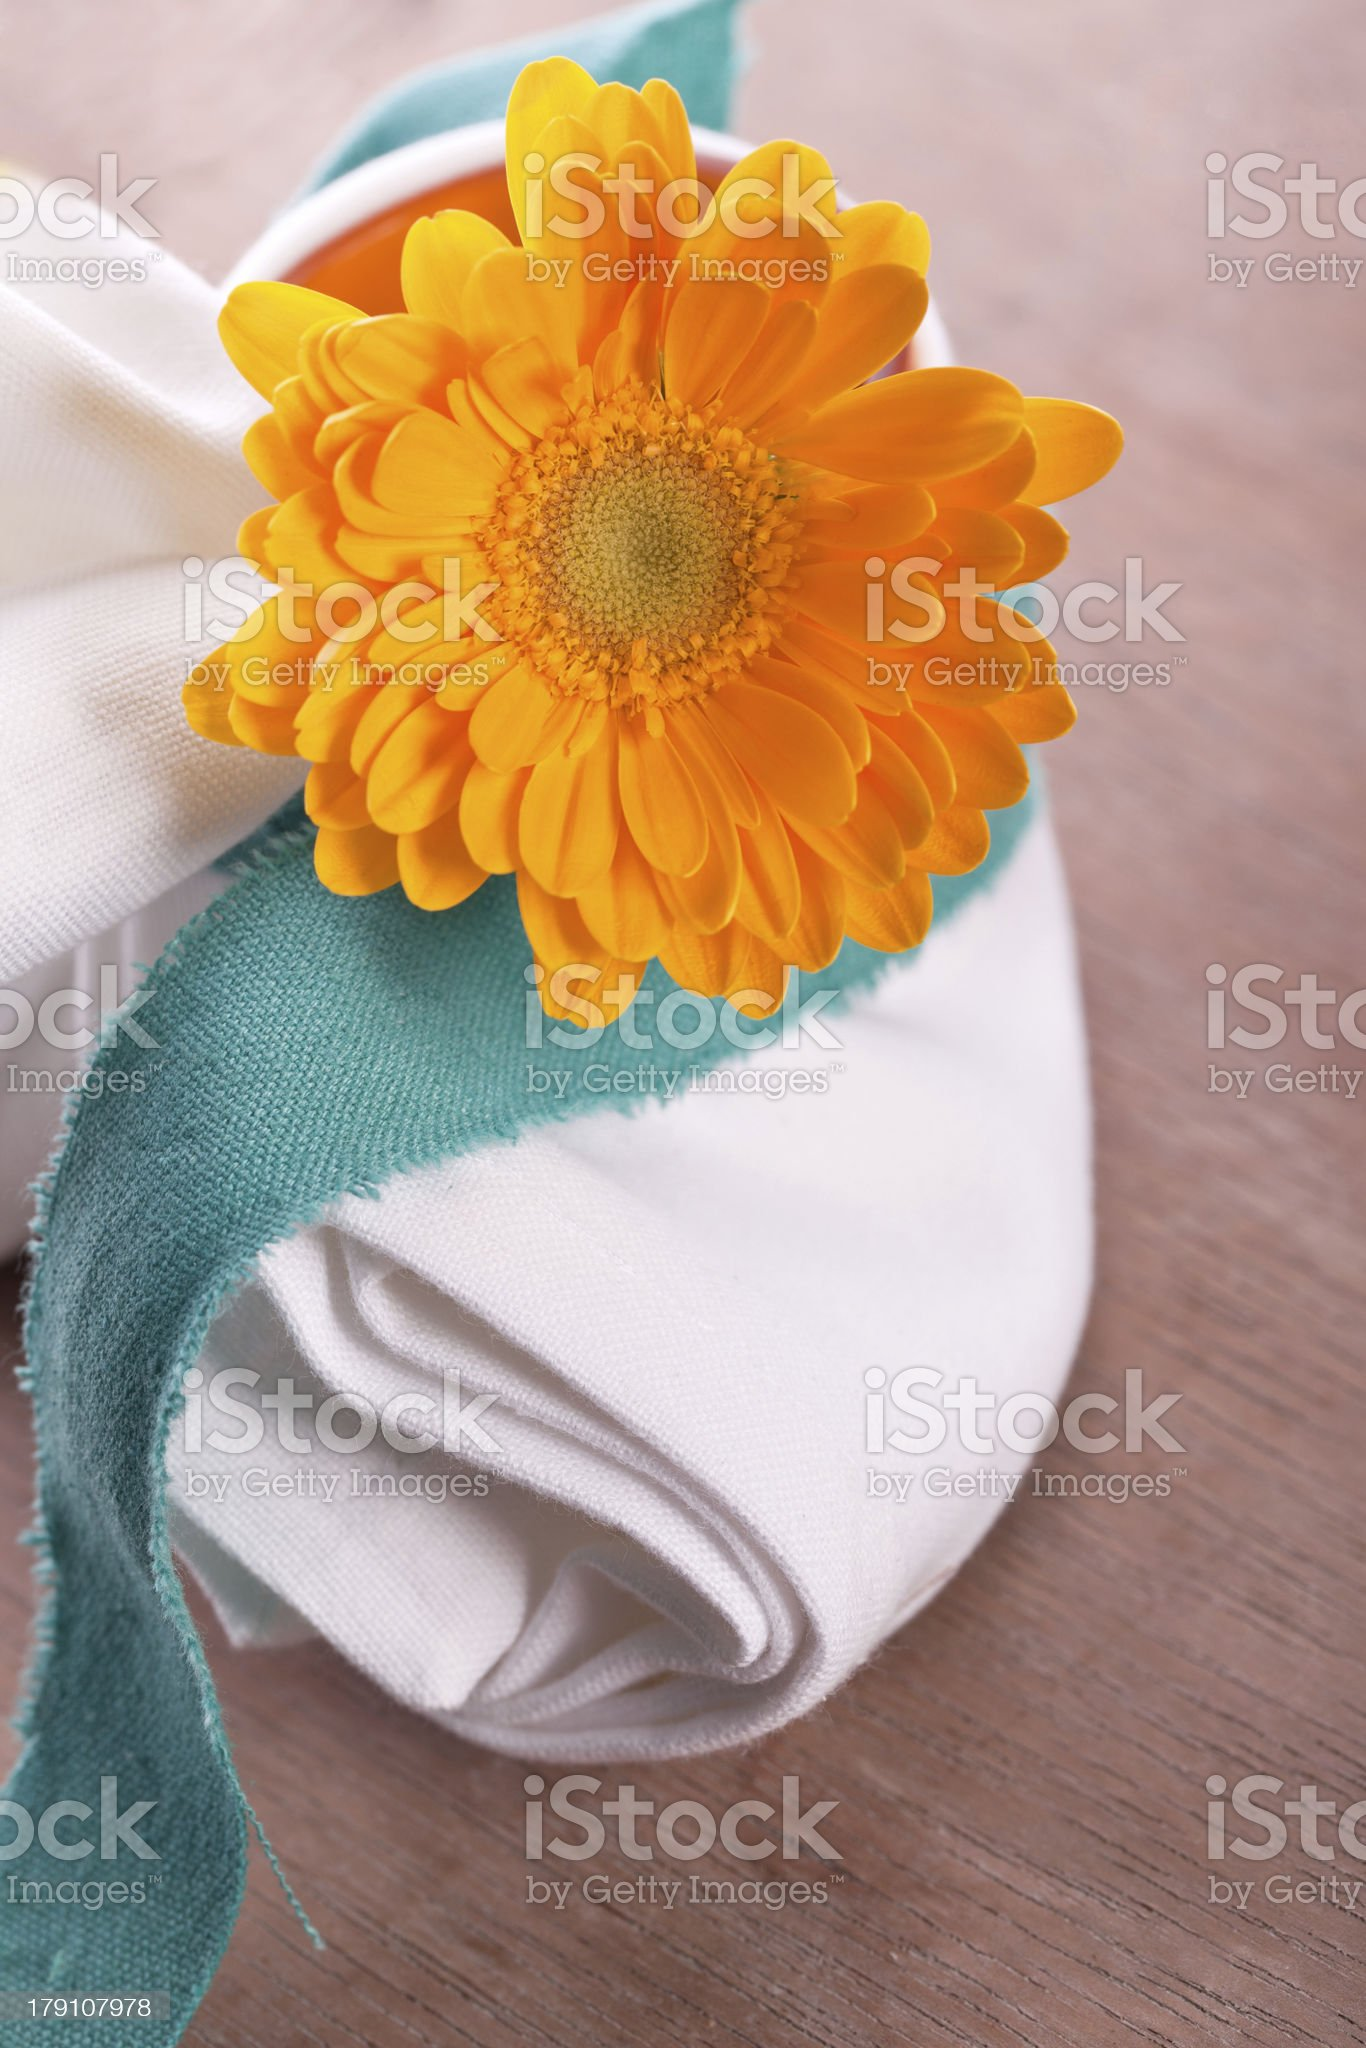 napkin with marguerite flower royalty-free stock photo